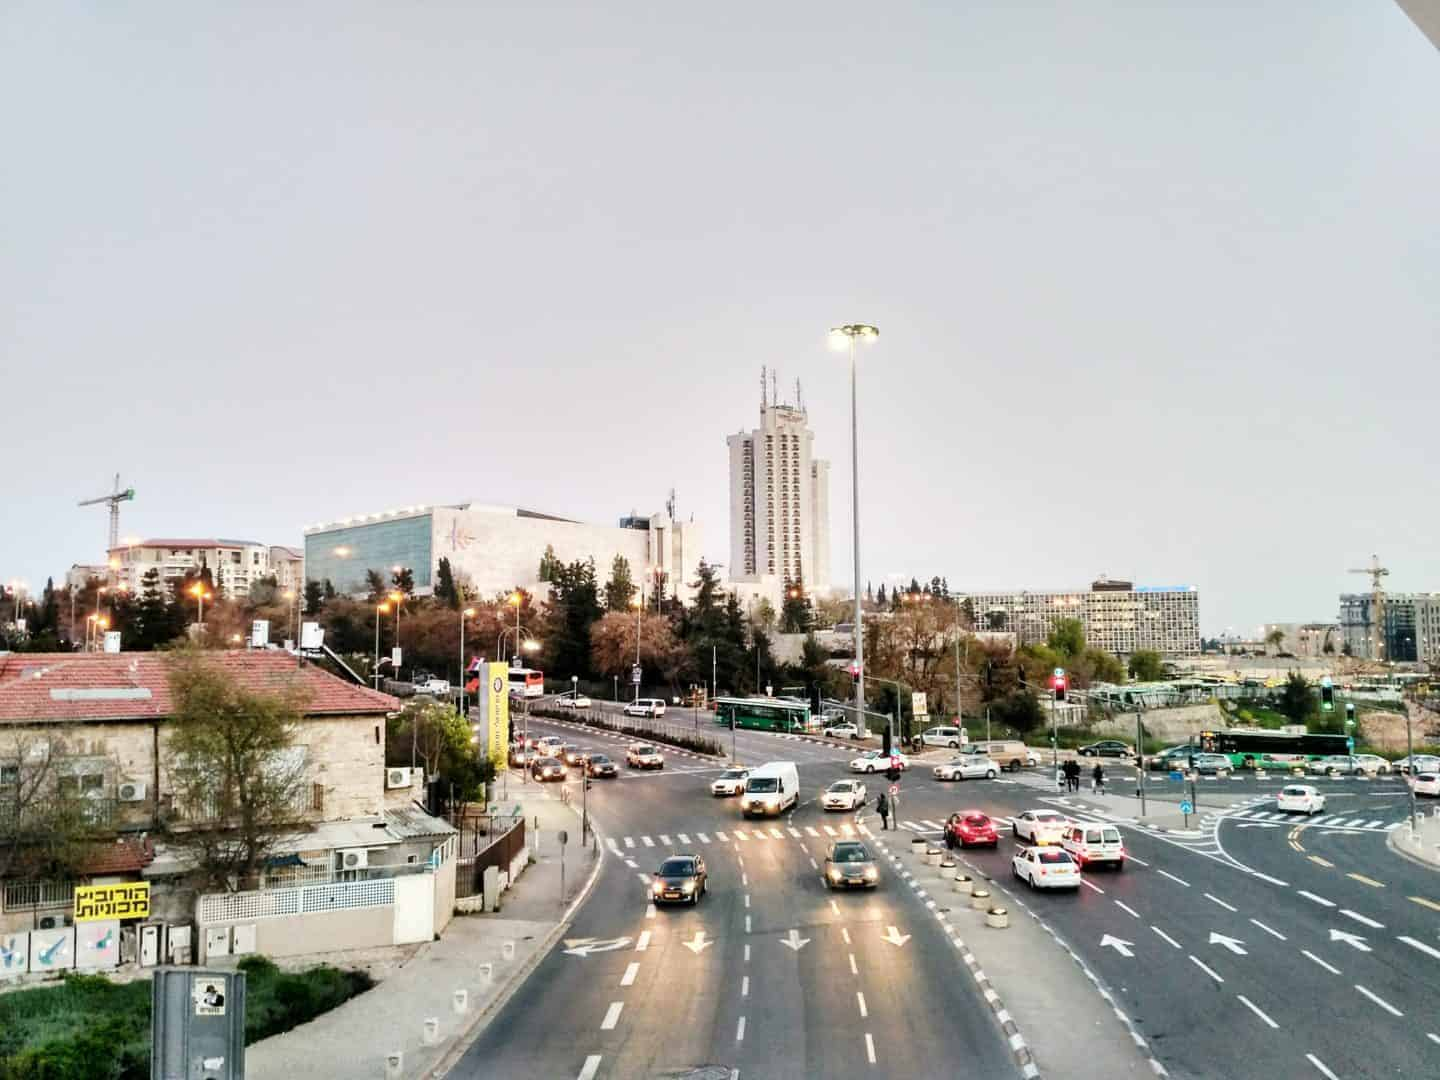 View from the Chords Bridge, Jerusalem